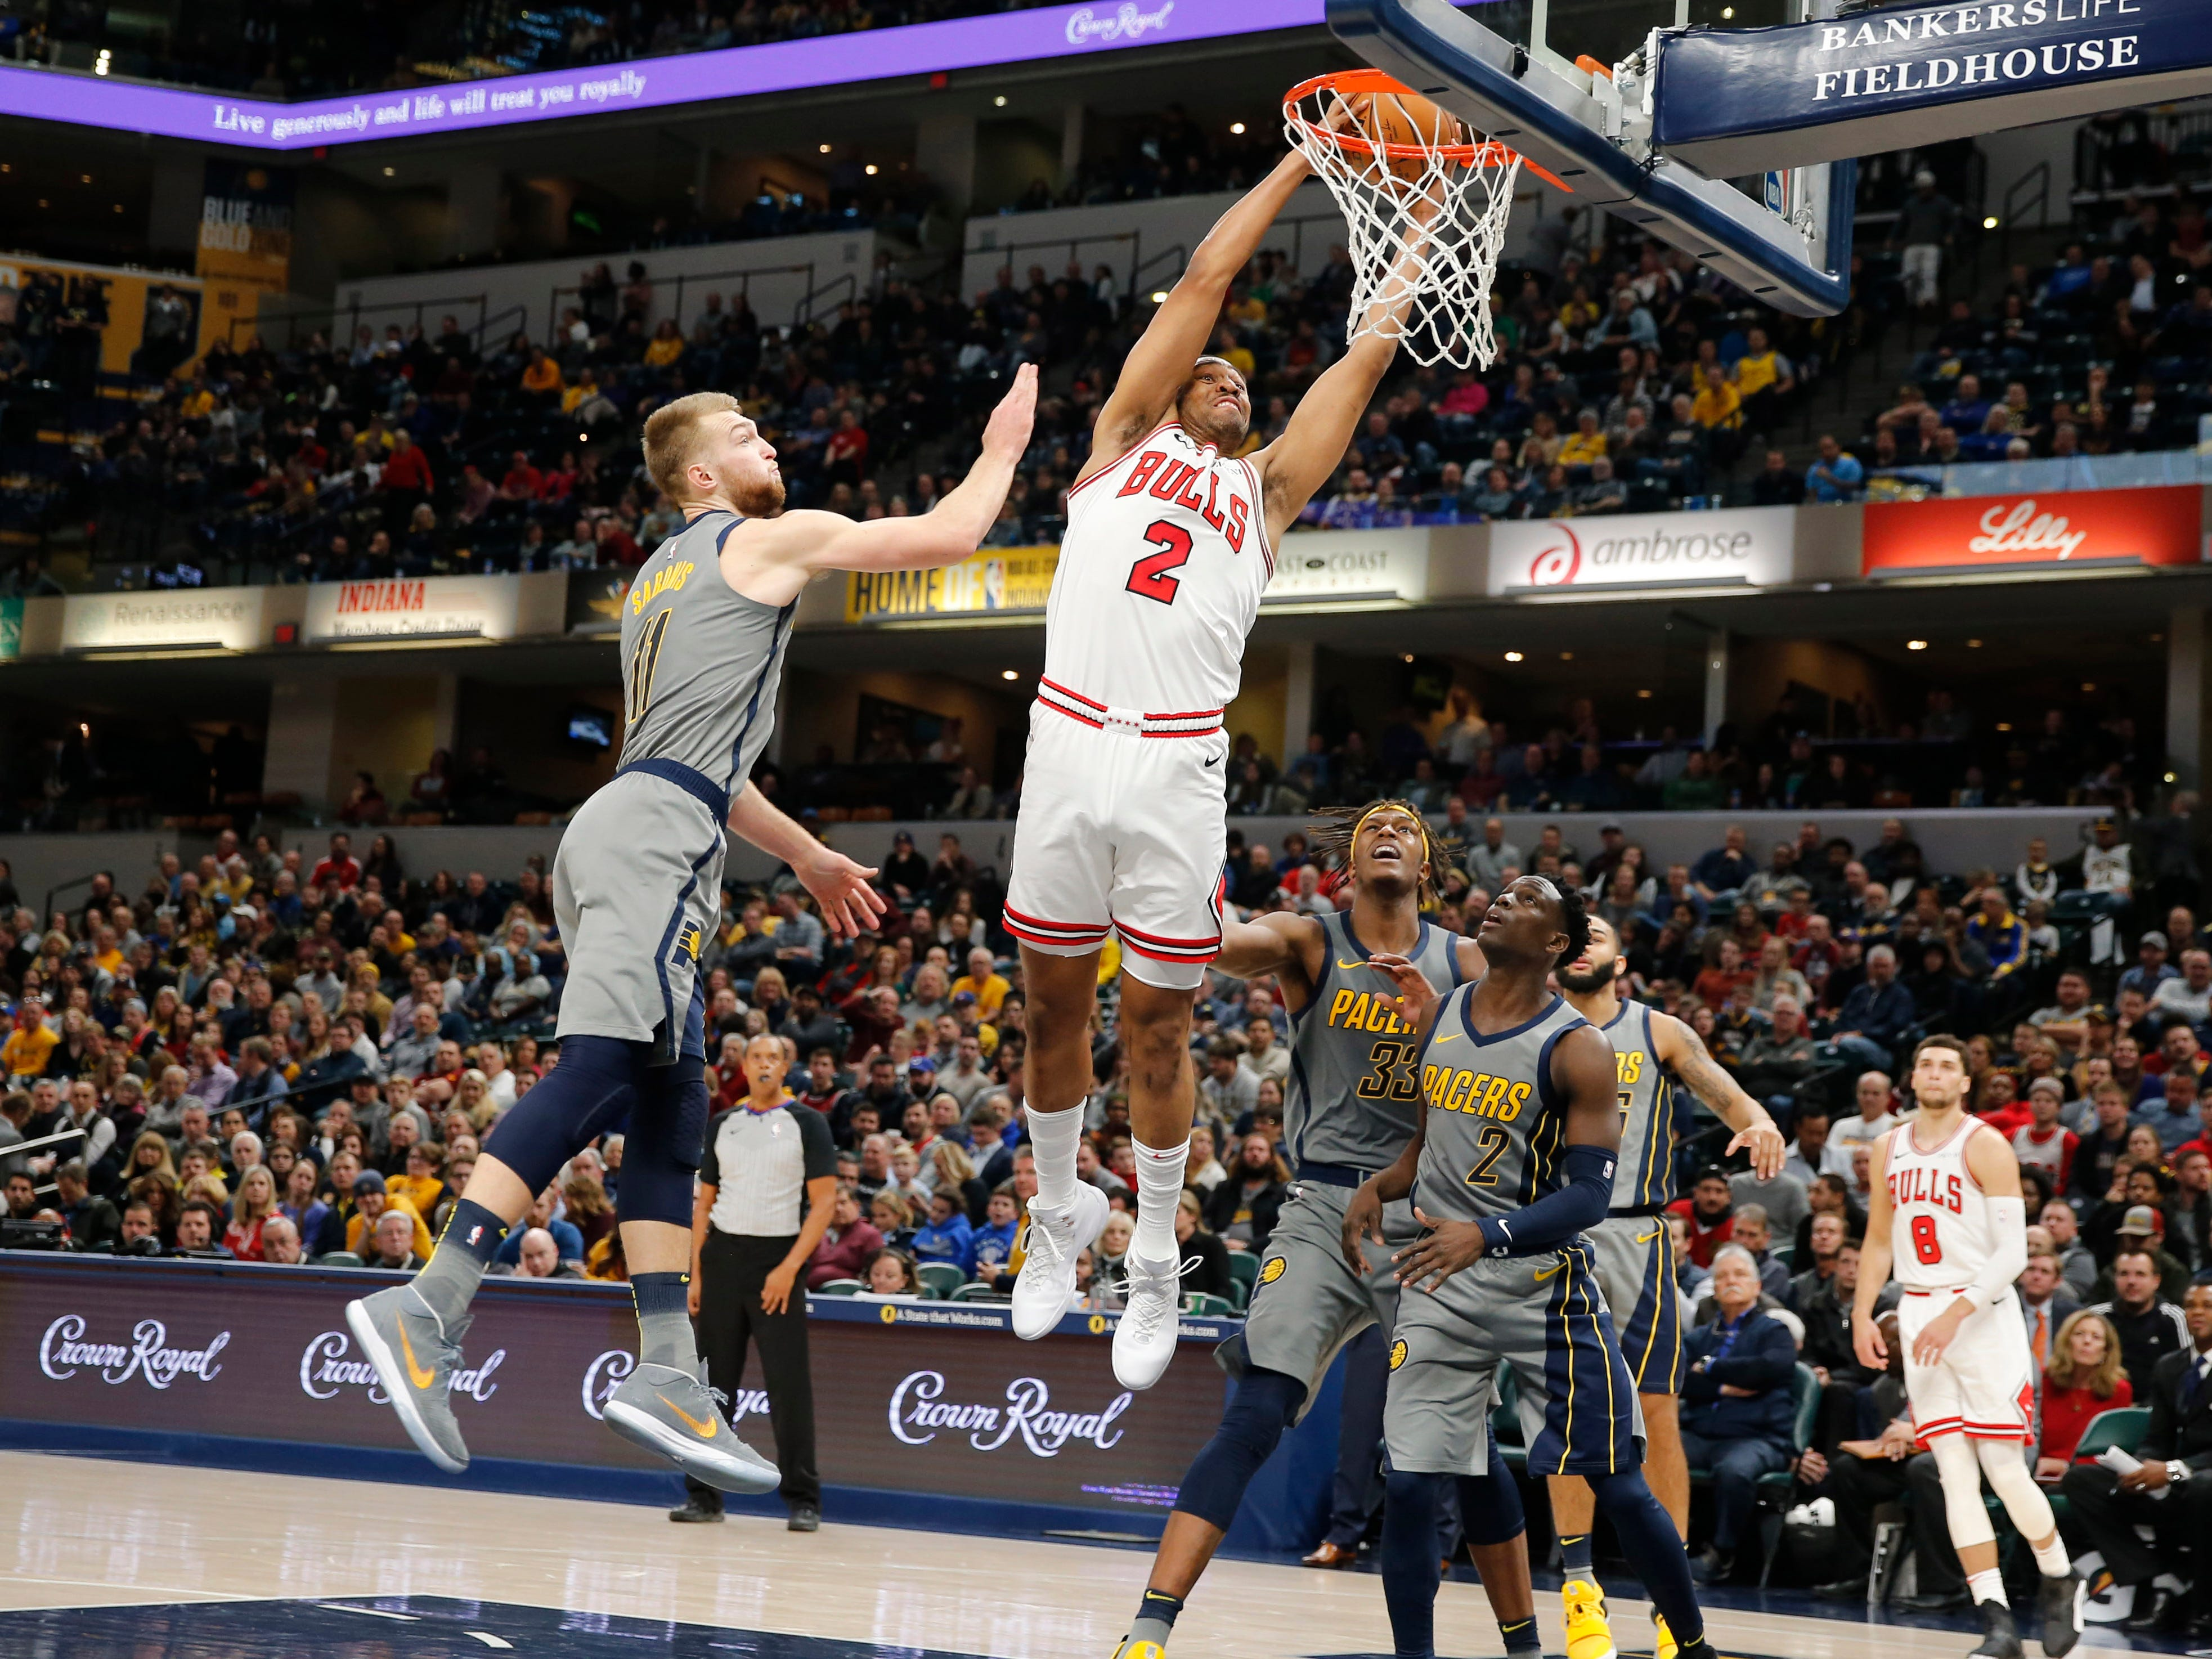 Dec. 4: Bulls forward Jabari Parker dunks the ball against Pacers forward Domantas Sabonis during the fourth quarter at Bankers Life Fieldhouse.